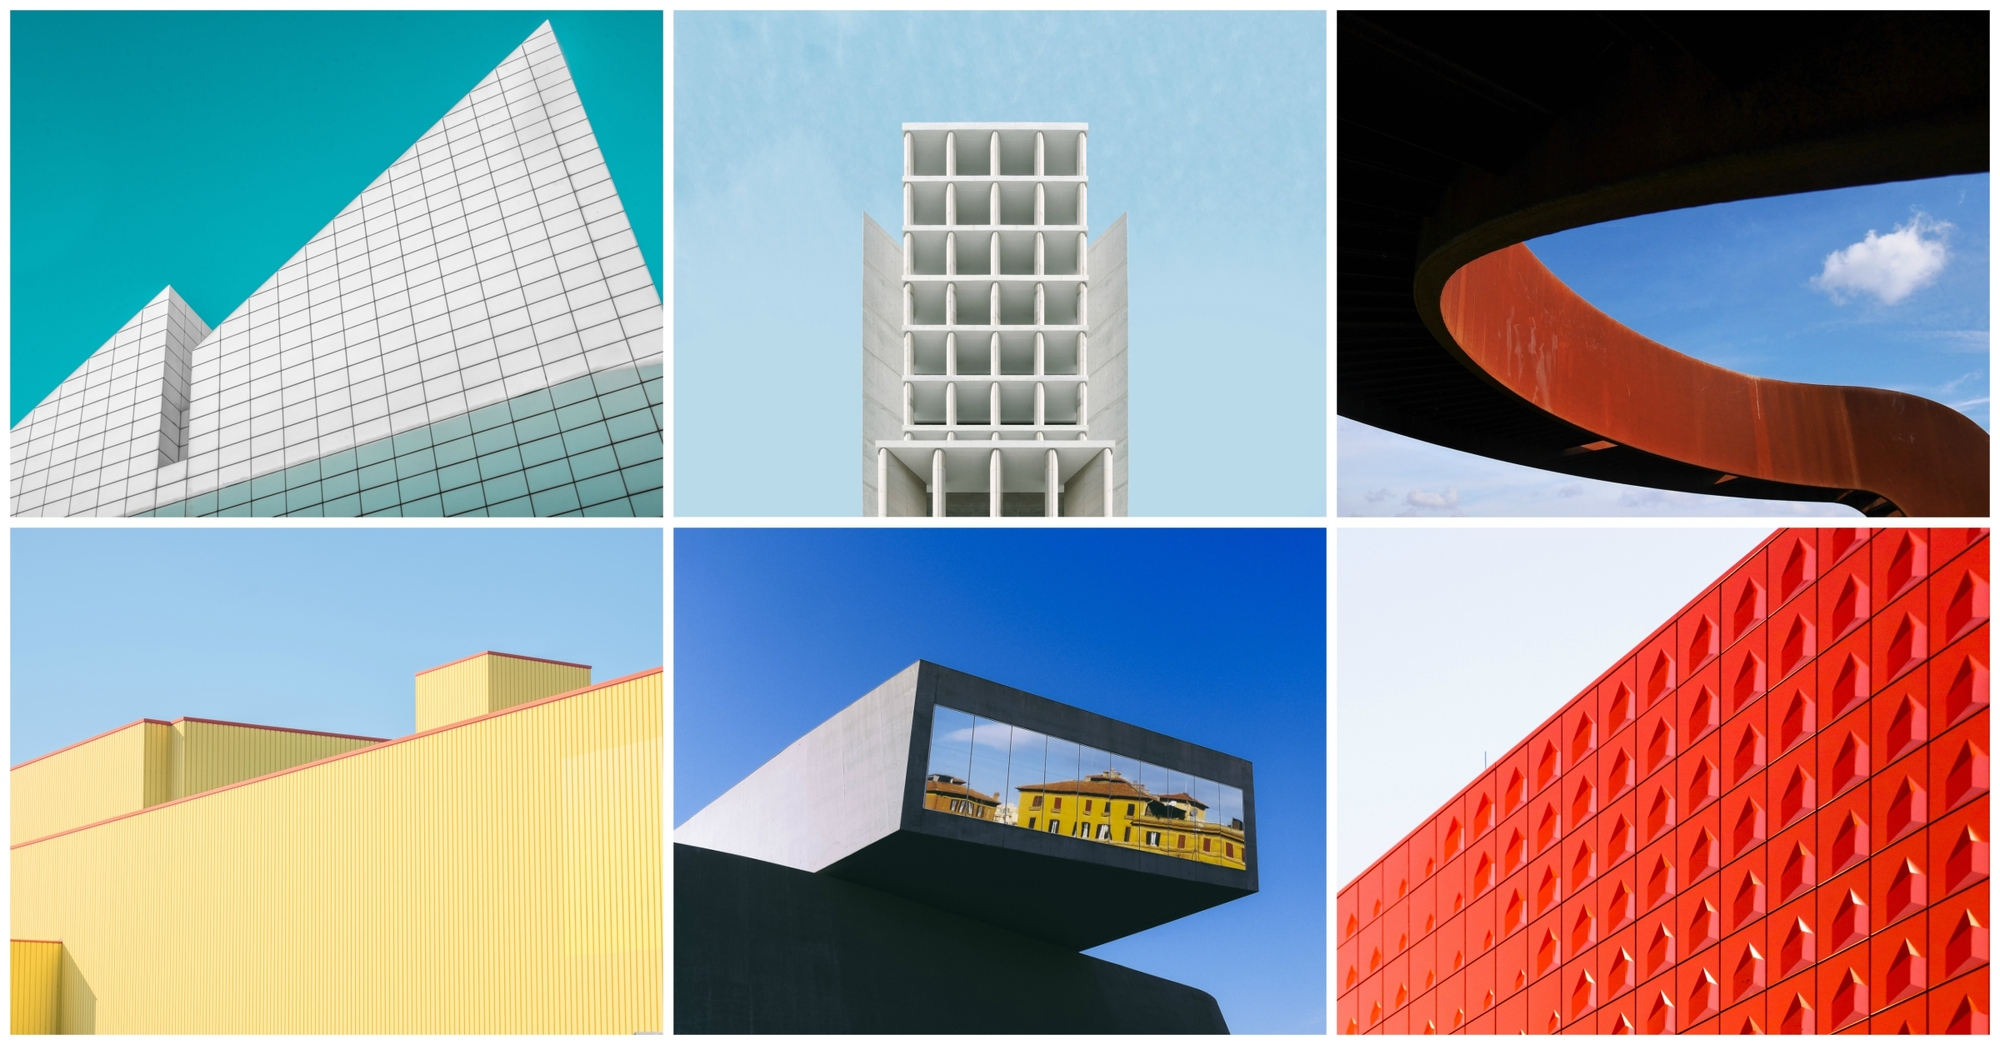 Bon 20 Photos Selected As Winners Of EyeEmu0027s Minimalist Architecture  Photography Mission, Courtesy Of EyeEm